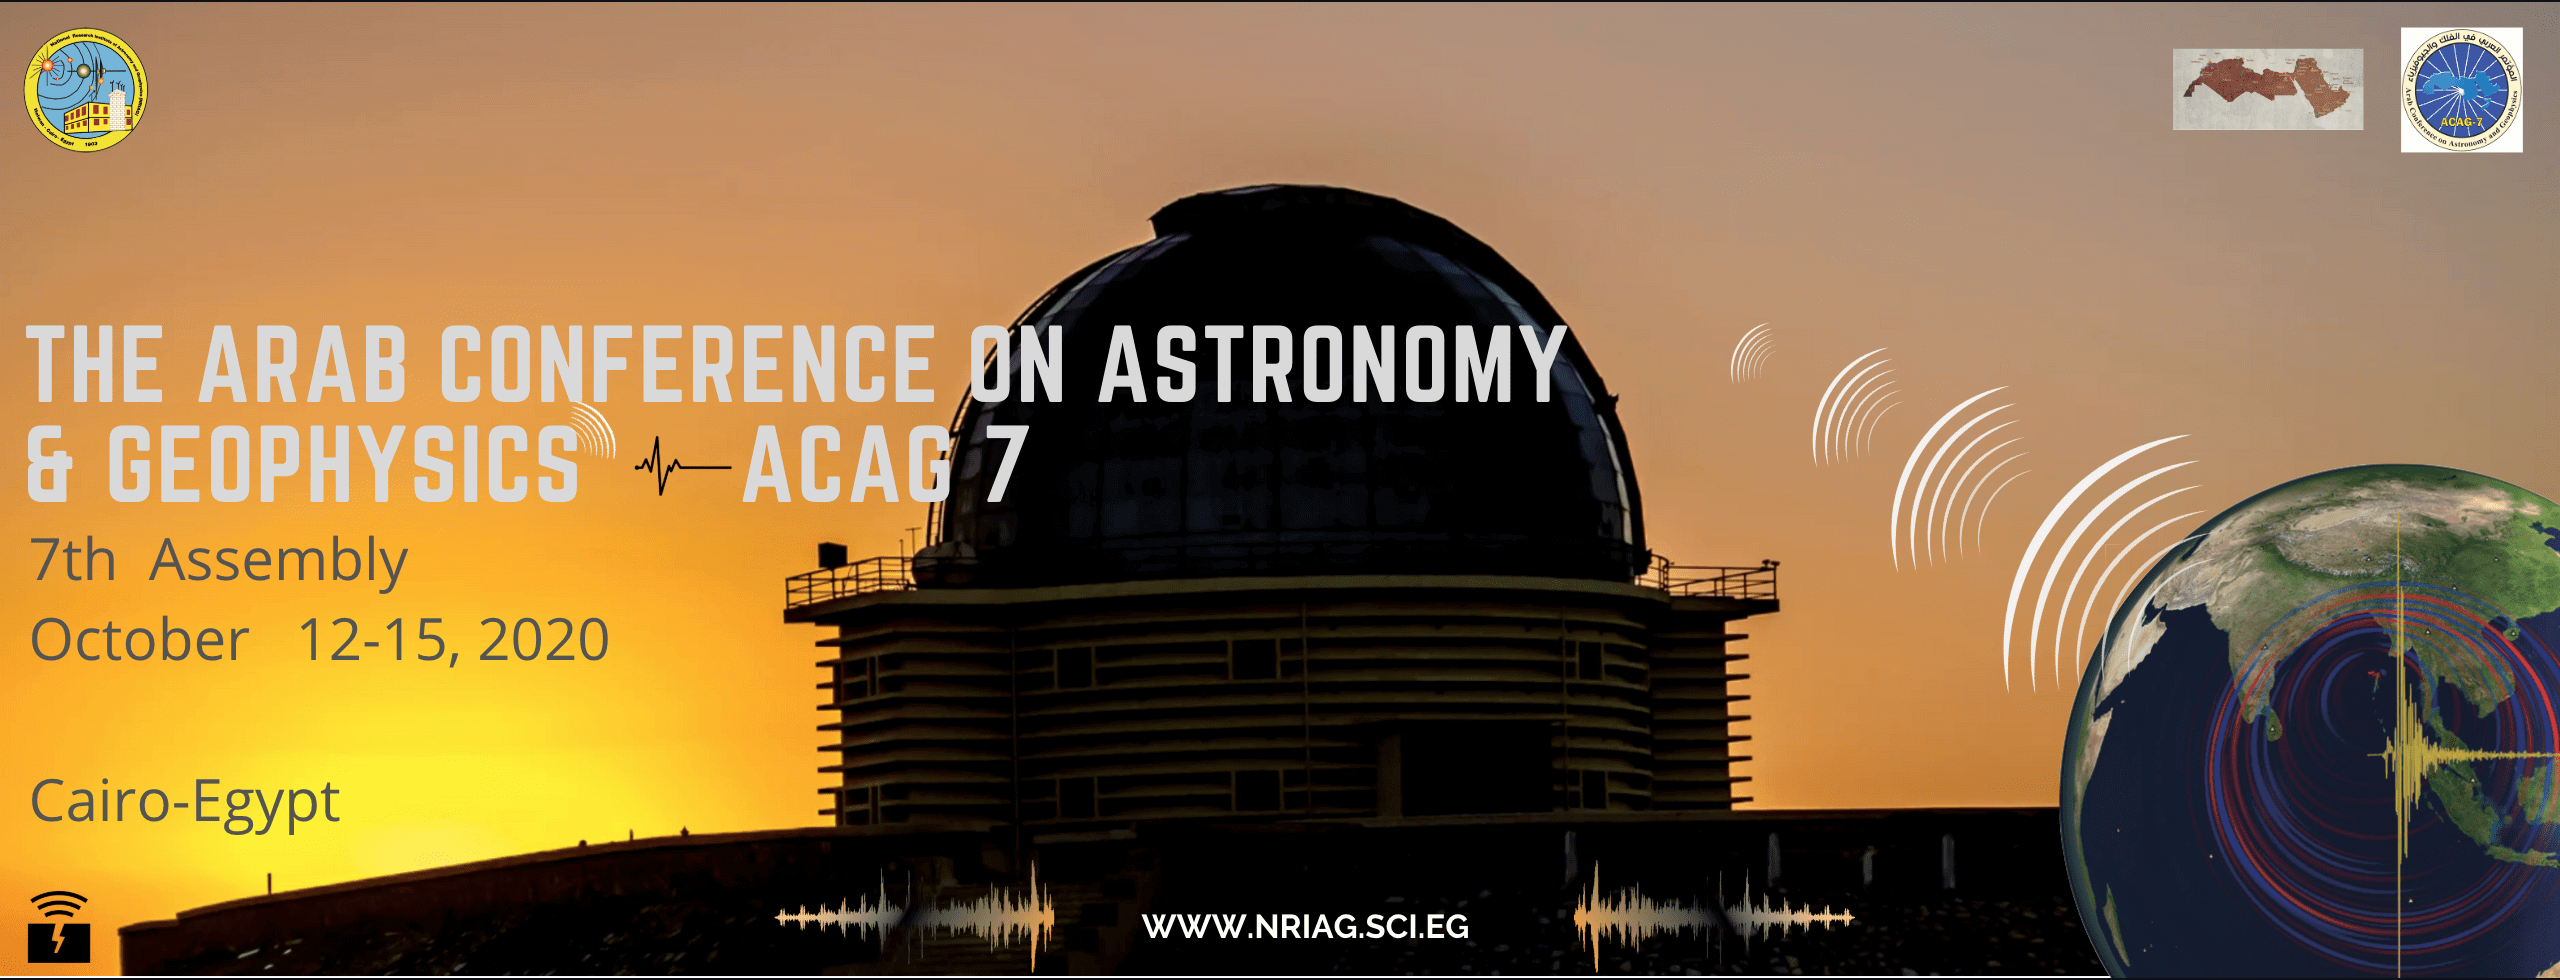 The Arab Conference on Astronomy and Geophysics 7th Assembly October 12-15, 2020, Cairo, Egypt